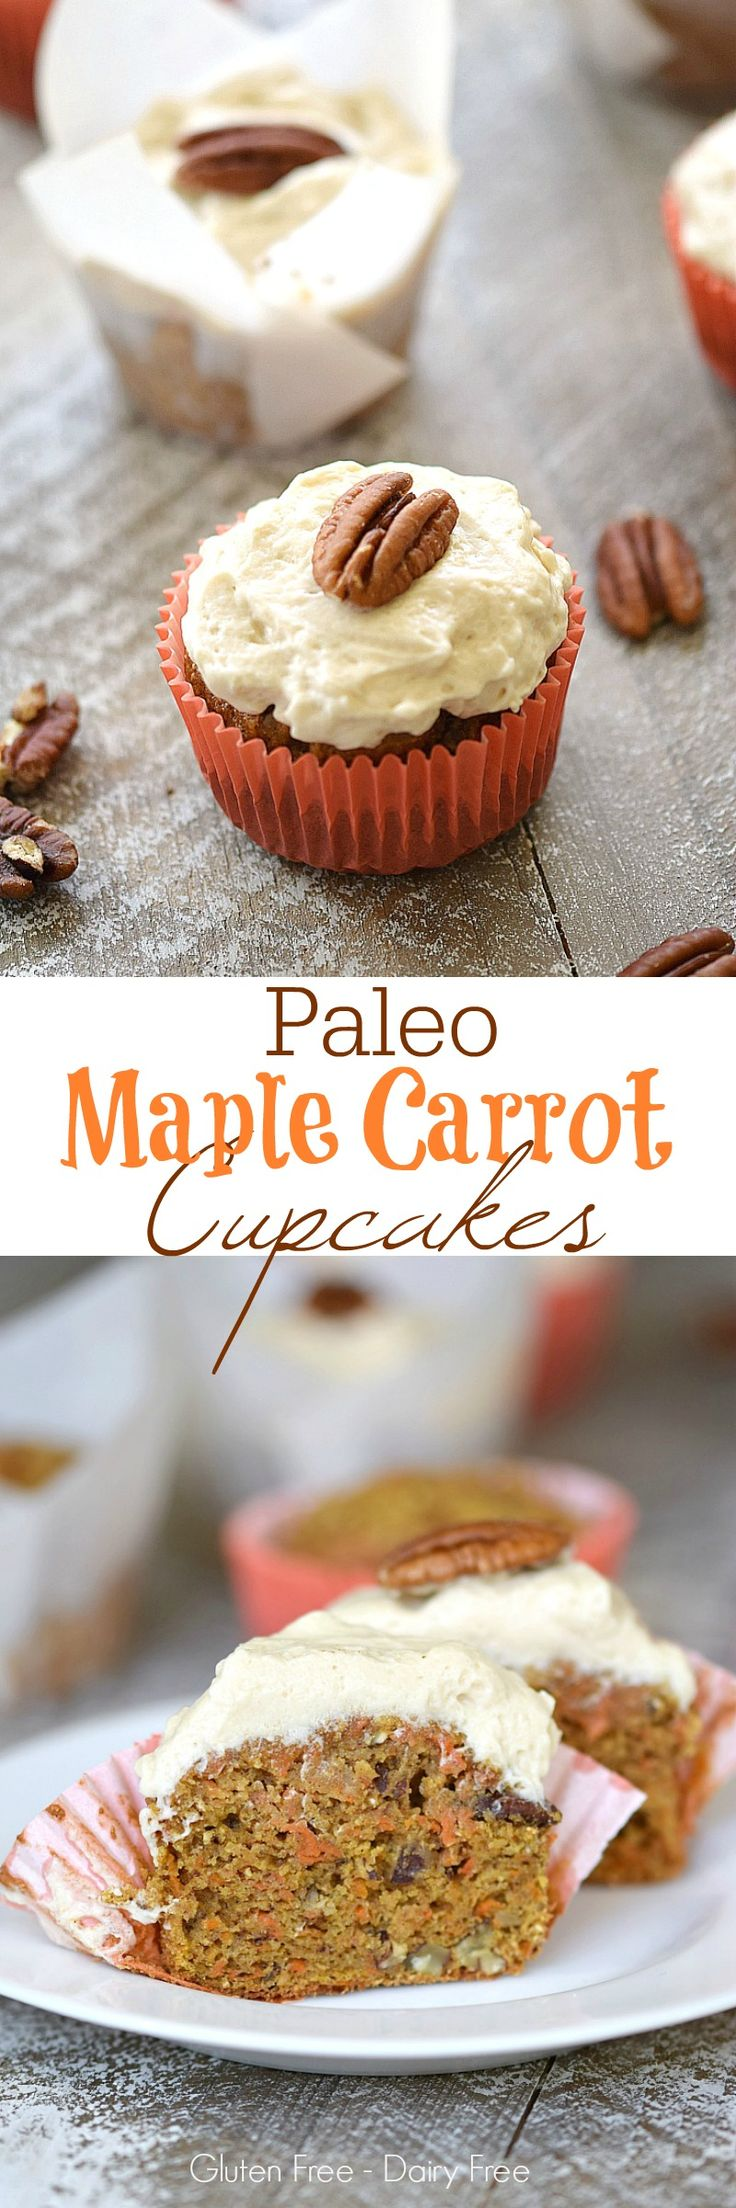 These Paleo Maple Carrot Cupcakes are moist and delicious and topped with a creamy Maple Frosting for a perfectly healthy treat | cookingwithcurls.com